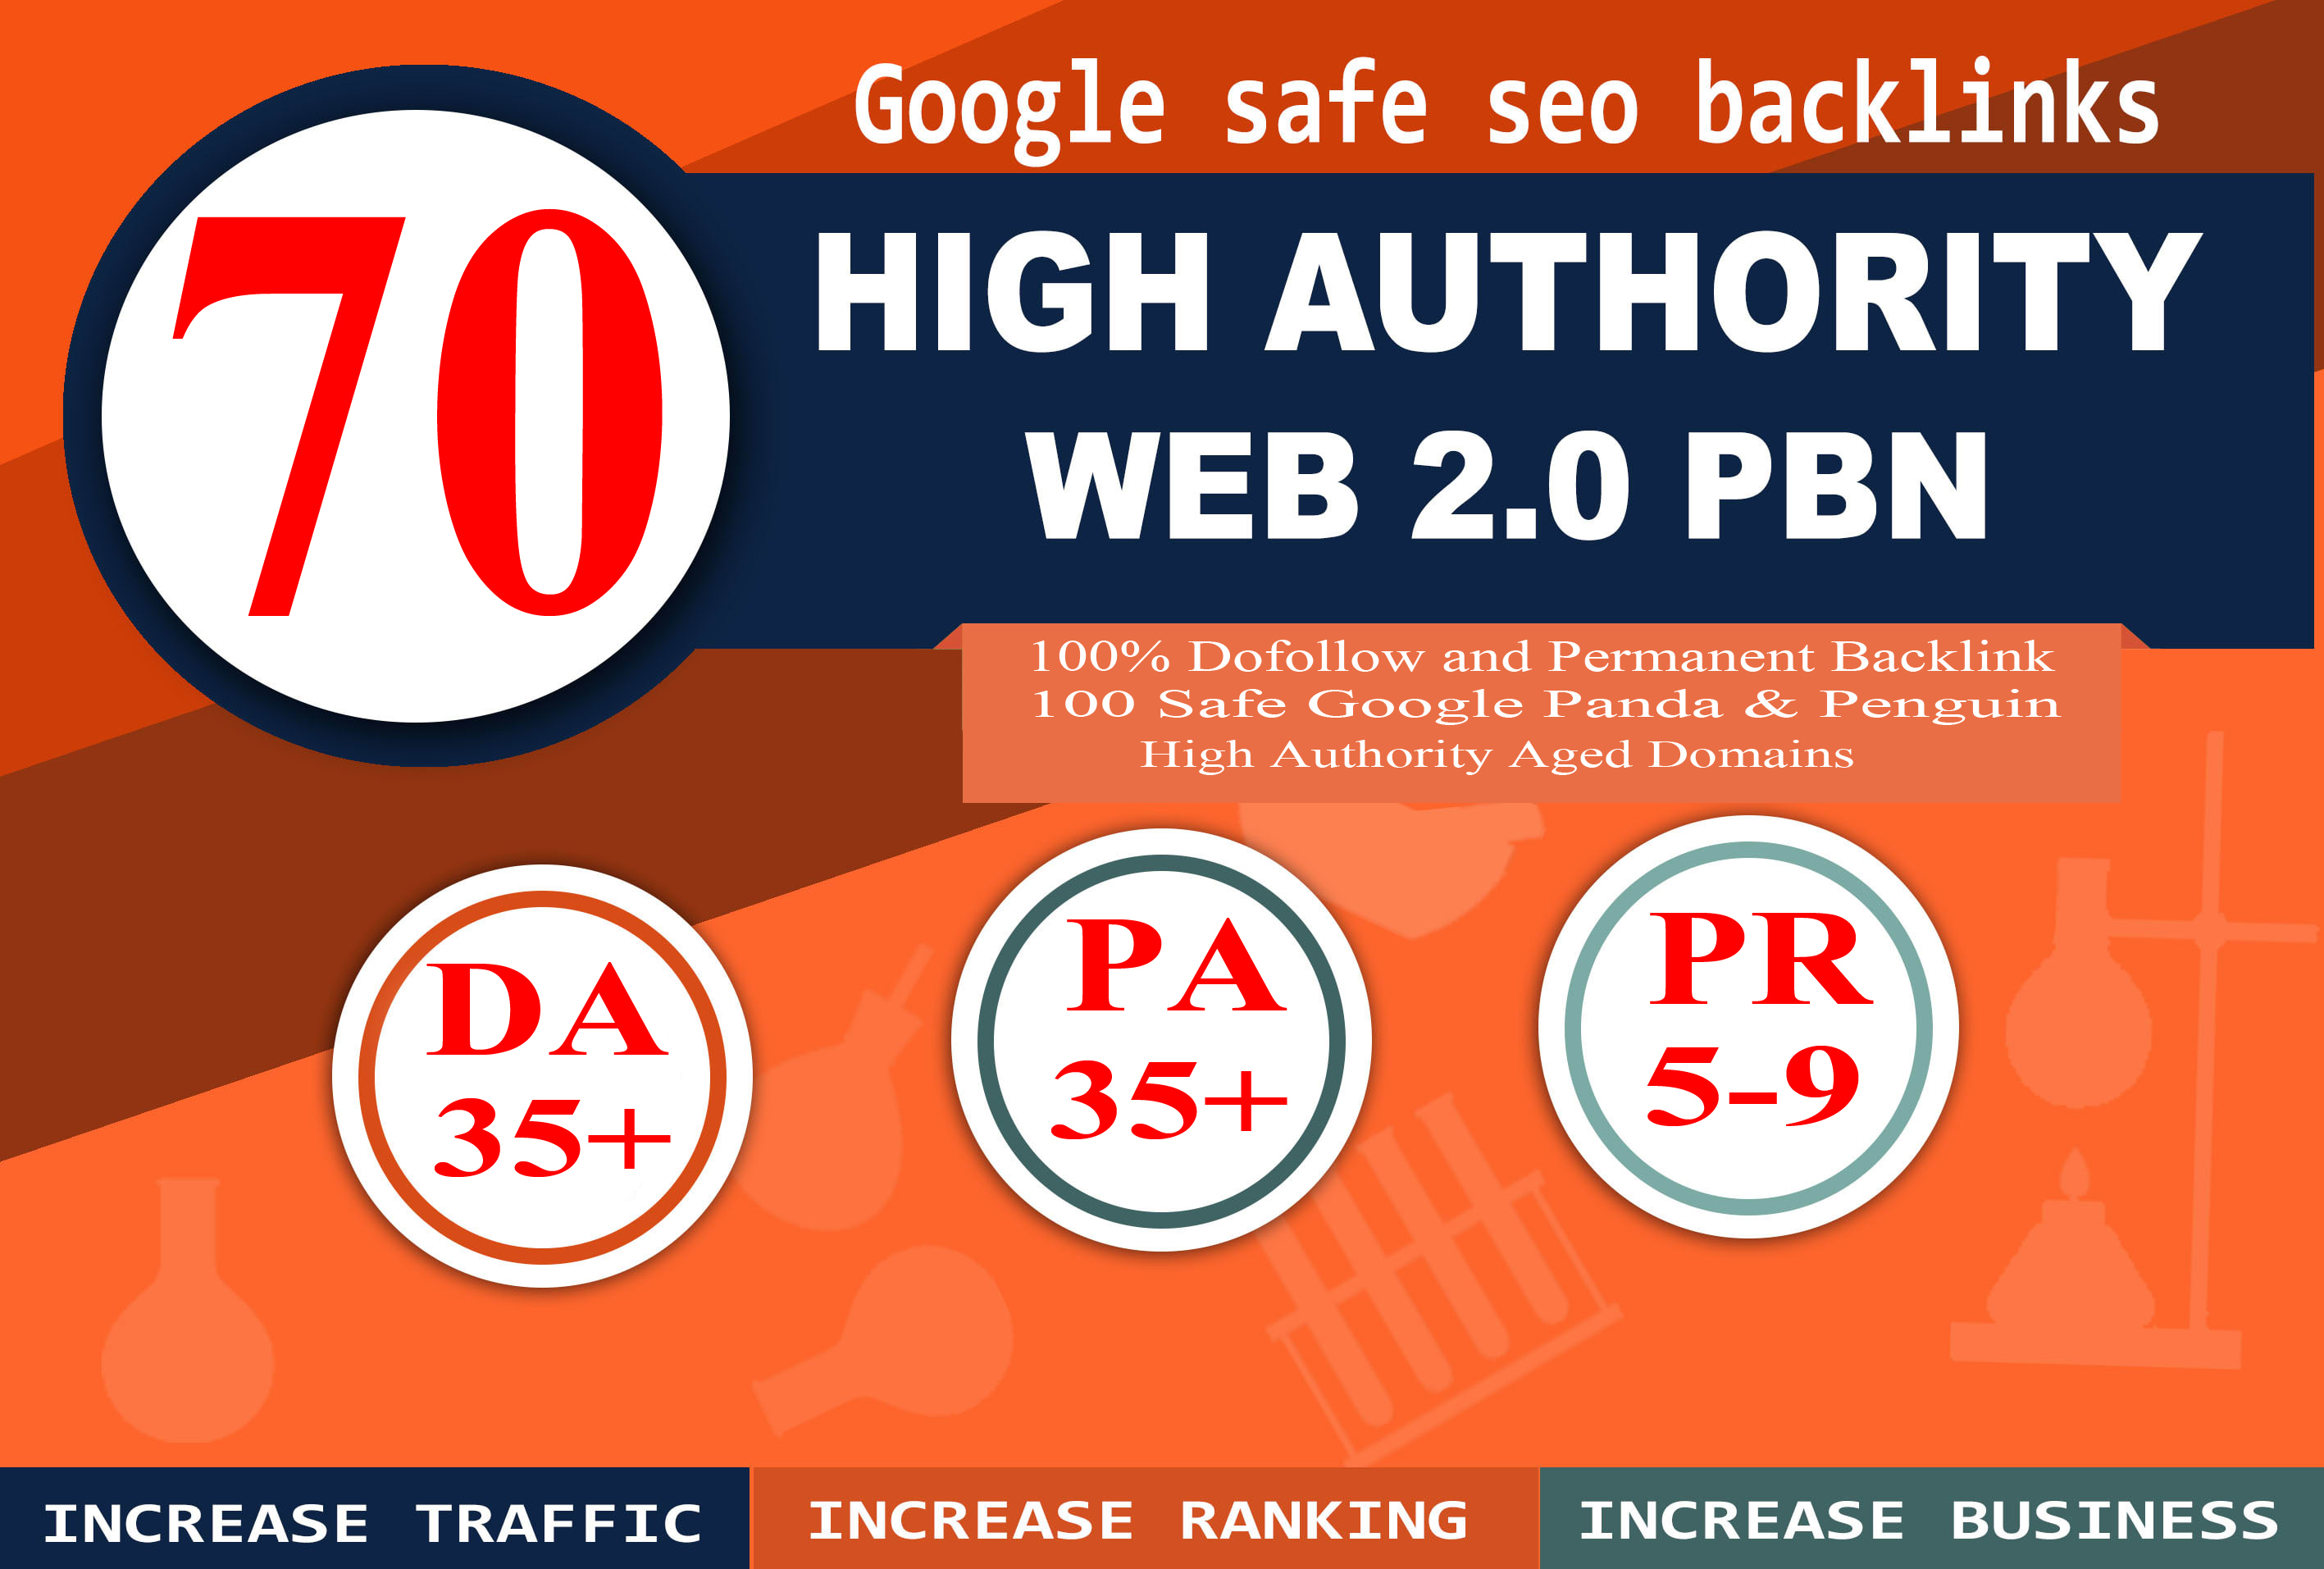 GET 70 powerfull PBN Backlink homepage web 2.0 with HIGH DA/PA/CF/TF WITH UNIQUE WEBSITE